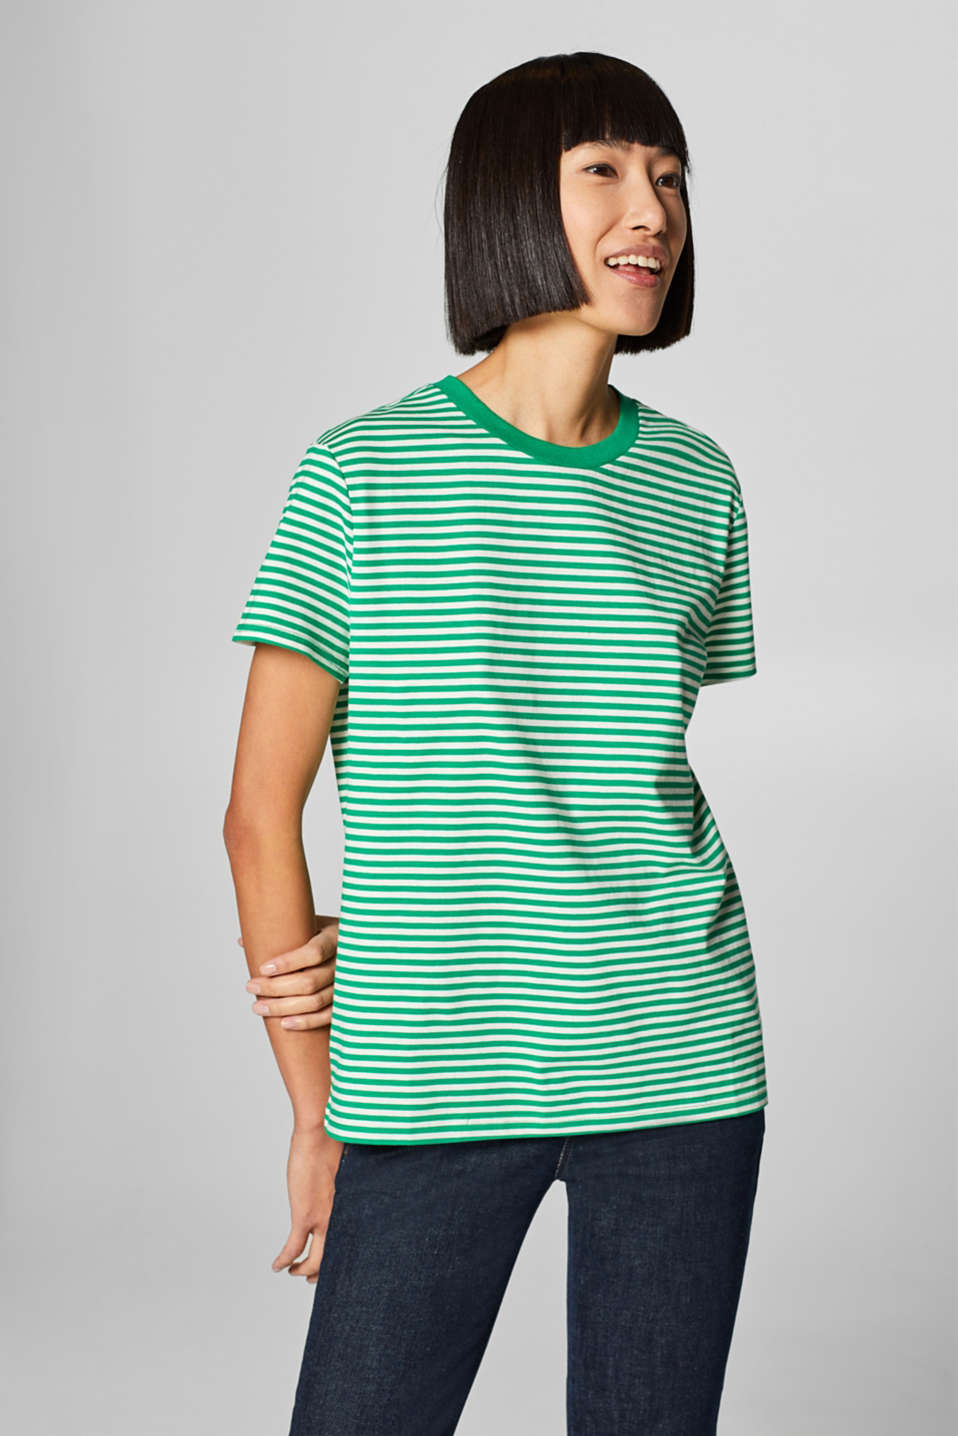 Esprit - Striped T-shirt with a textured trim, 100% cotton